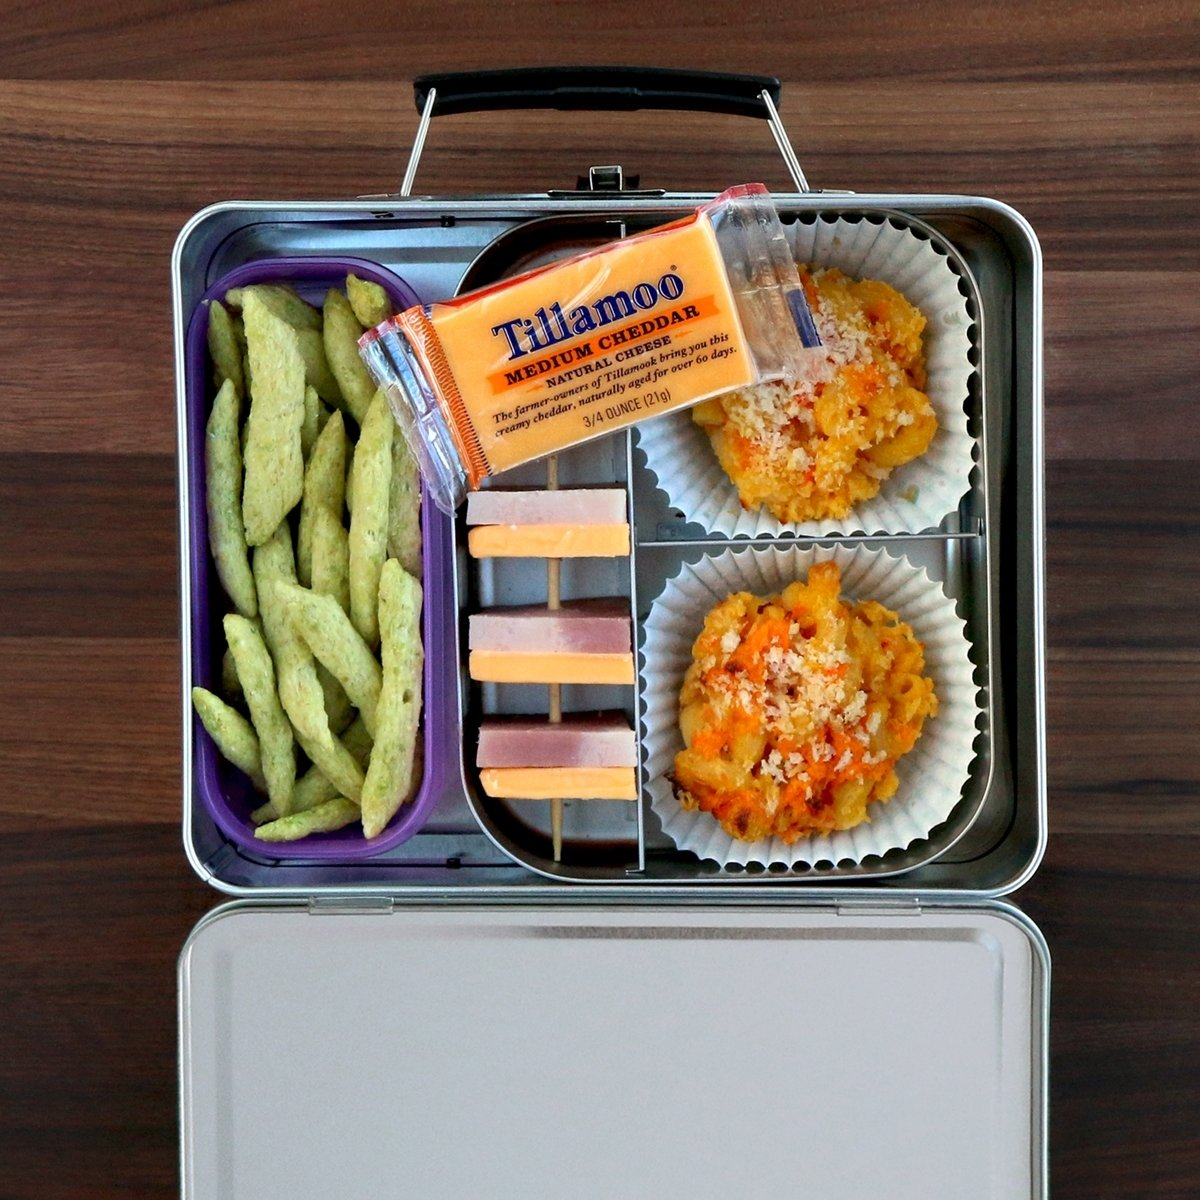 10 Cute Lunch Box Ideas For Picky Eaters picky eaters lunchbox idea tillamook 1 2020